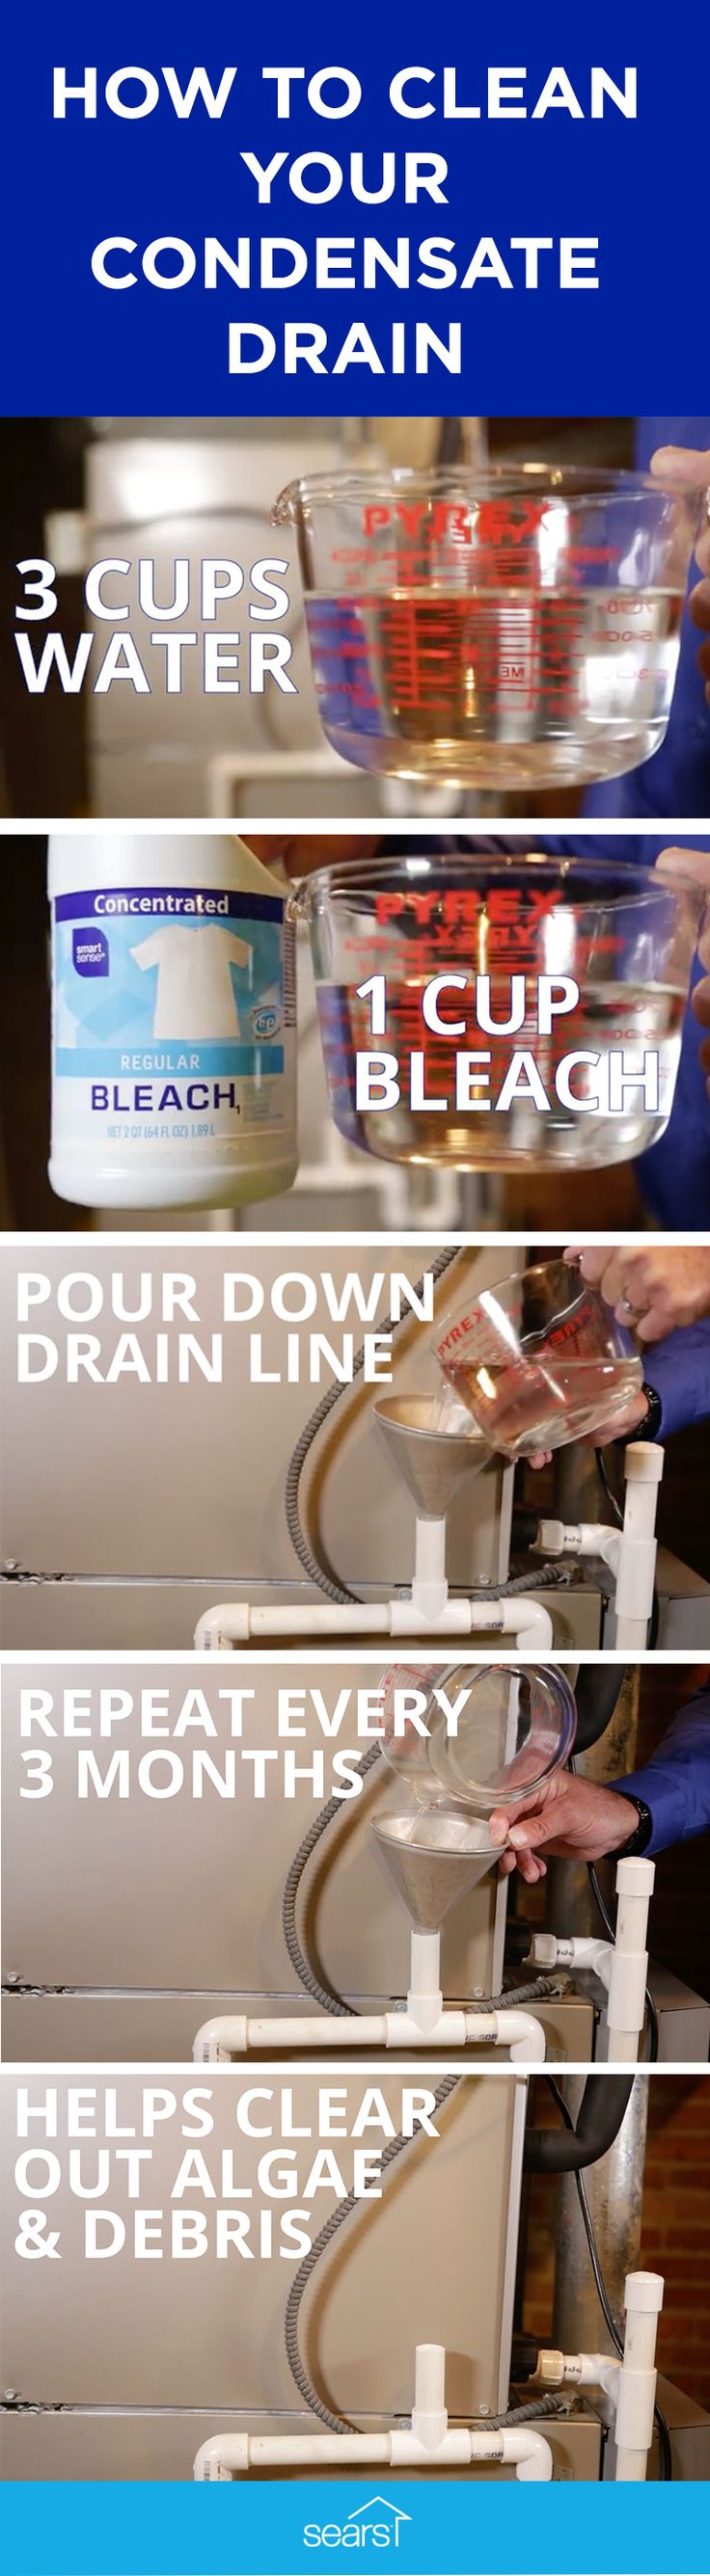 Did you know you should regularly clean your condensate drain line? Here's how to do it. Combine 3 cups water with 1 cup bleach. Pour down drain line using a funnel. Repeat every three months to help clear out algae and debris. Visit the Sears Home Improvement blog for more HVAC maintenance tips.